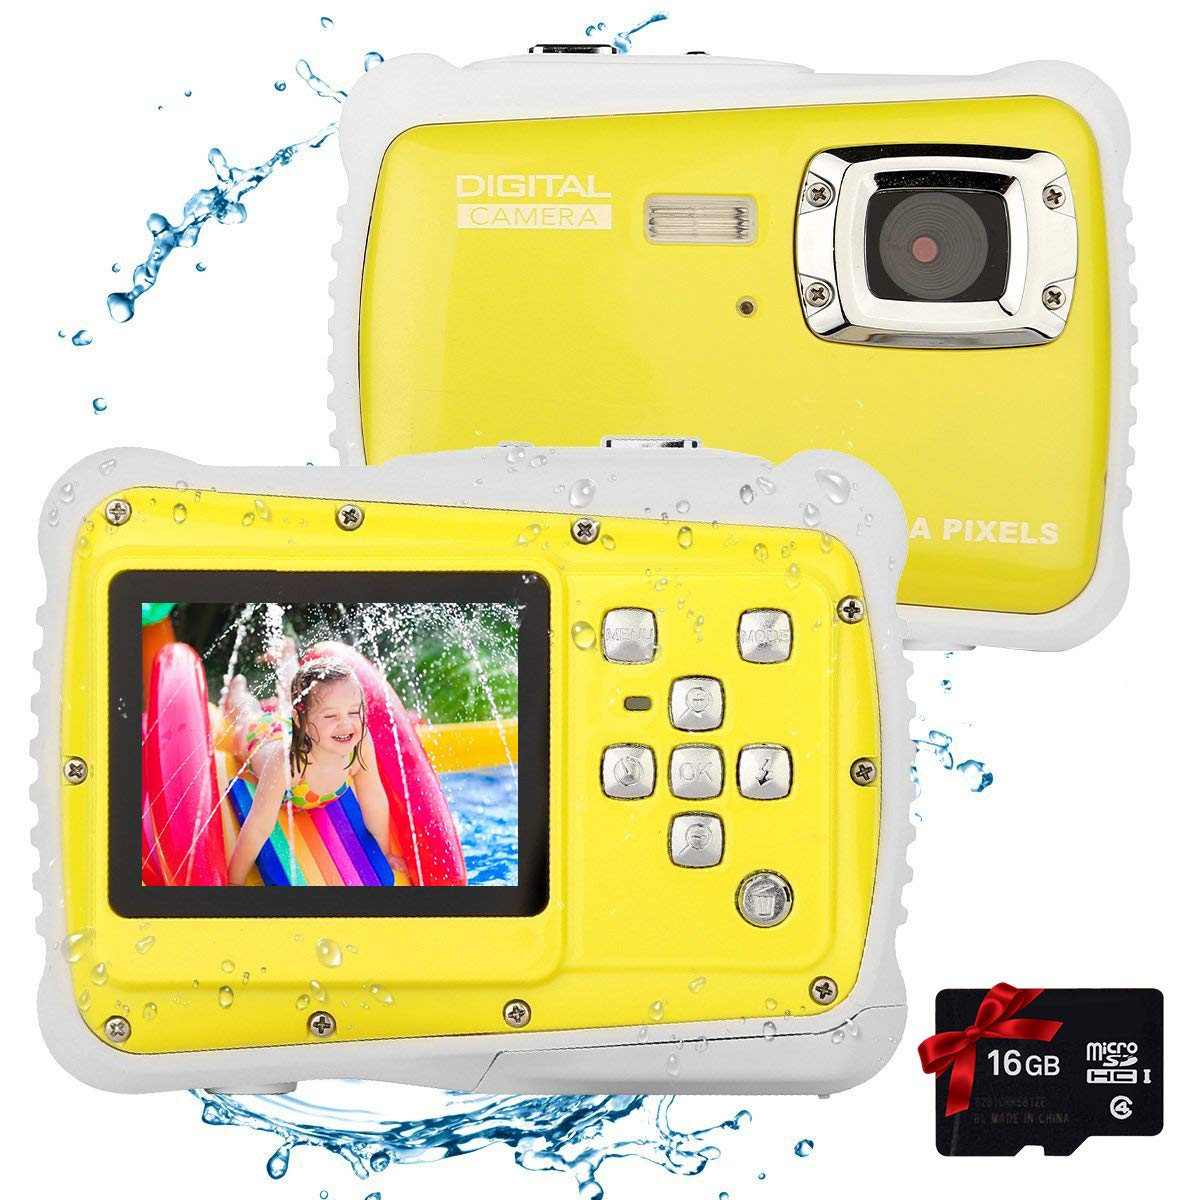 Kids Waterproof Camera Digital Camera for 4-10 Years Old Children, 12MP HD Underwater Action Camera Camcorder with 8X Digital Zoom, 2.0 Inch LCD Display, 16G Micro SD Card – Easy to Use (Yellow) by tesha (Image #1)